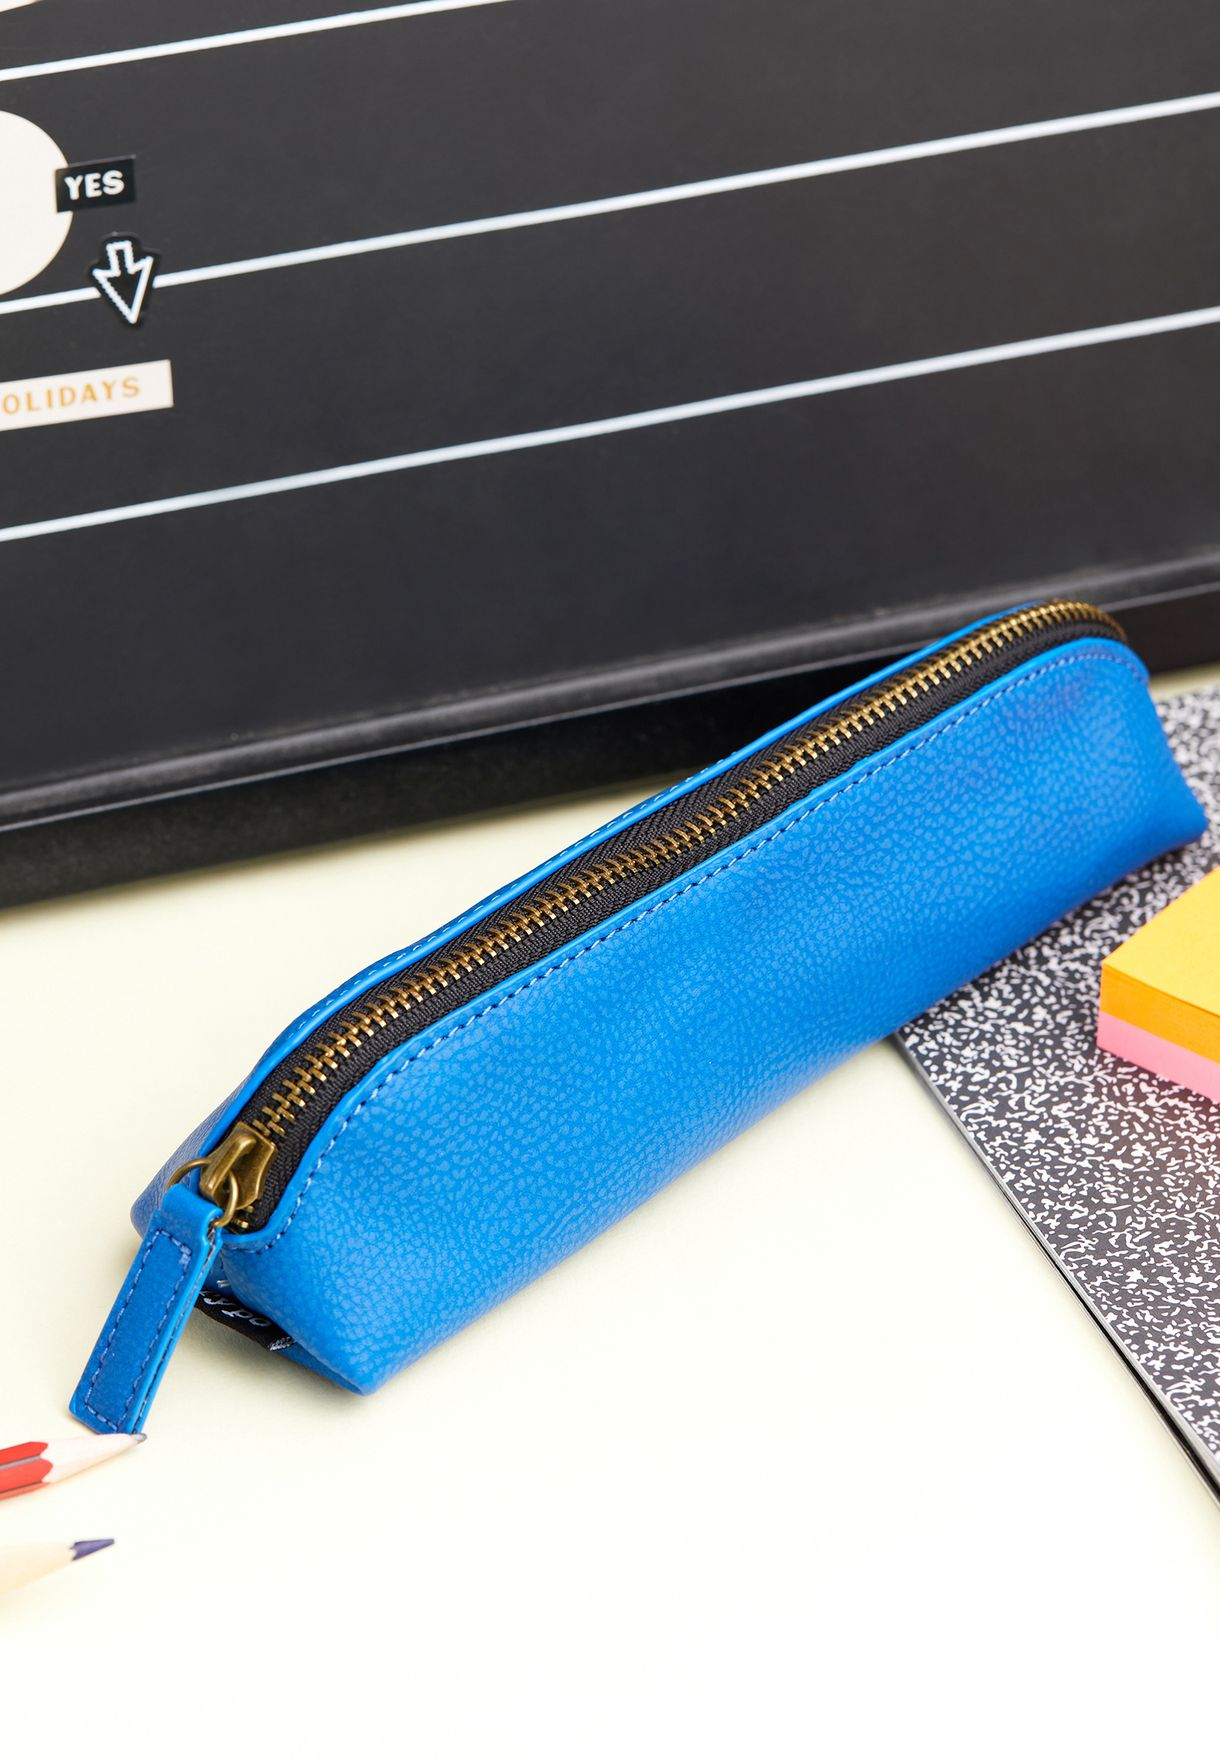 True Buffalo Barrel Pencil Case